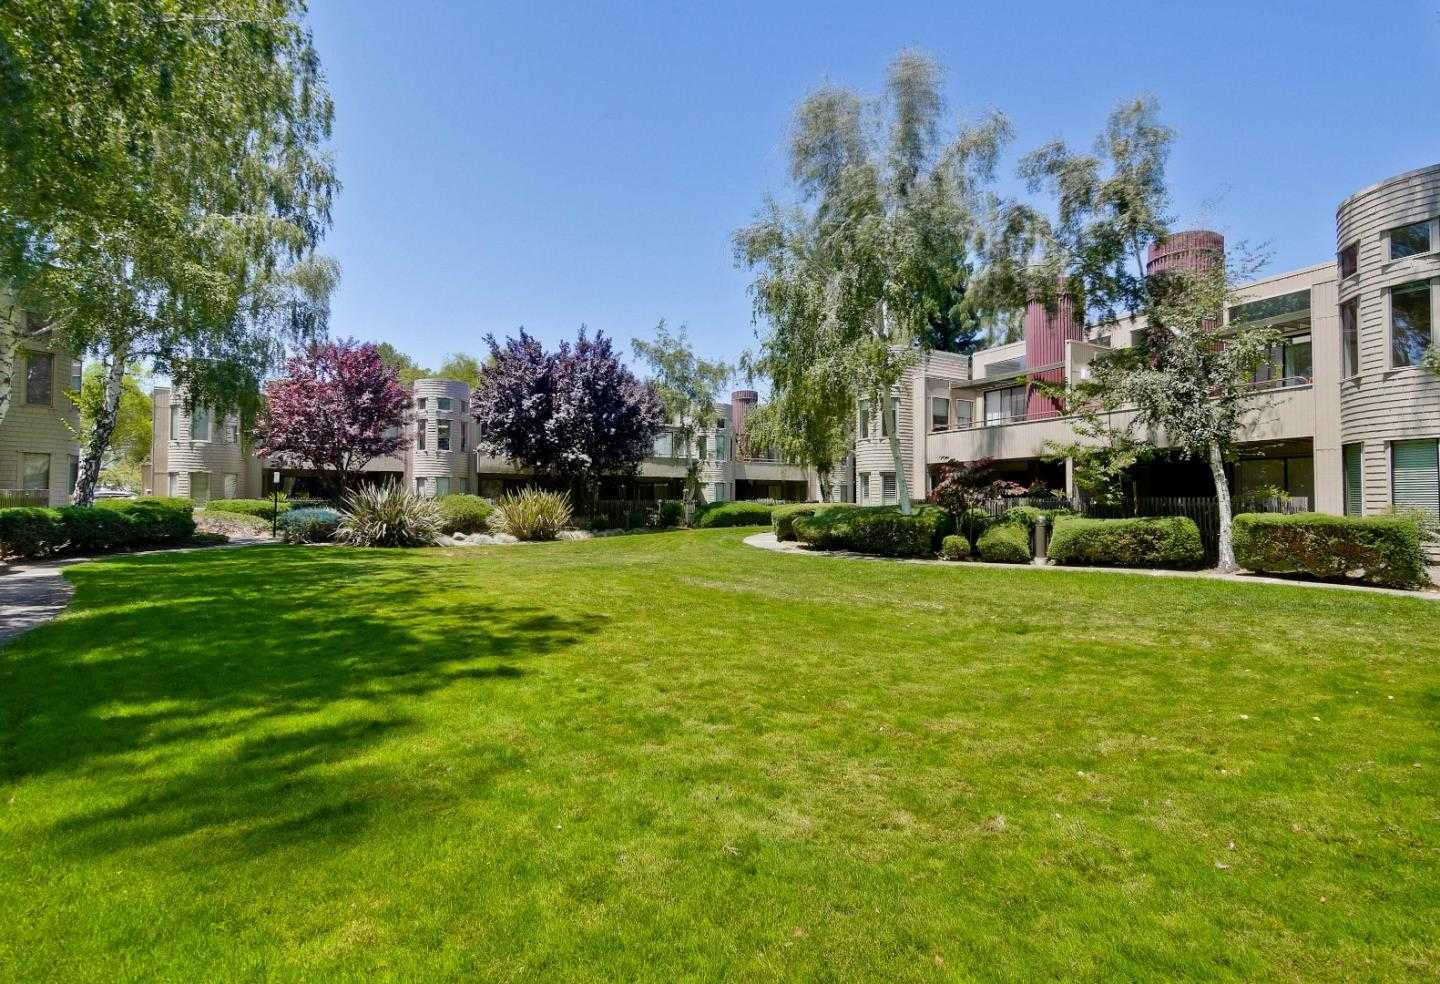 $1,198,000 - 3Br/2Ba -  for Sale in Mountain View